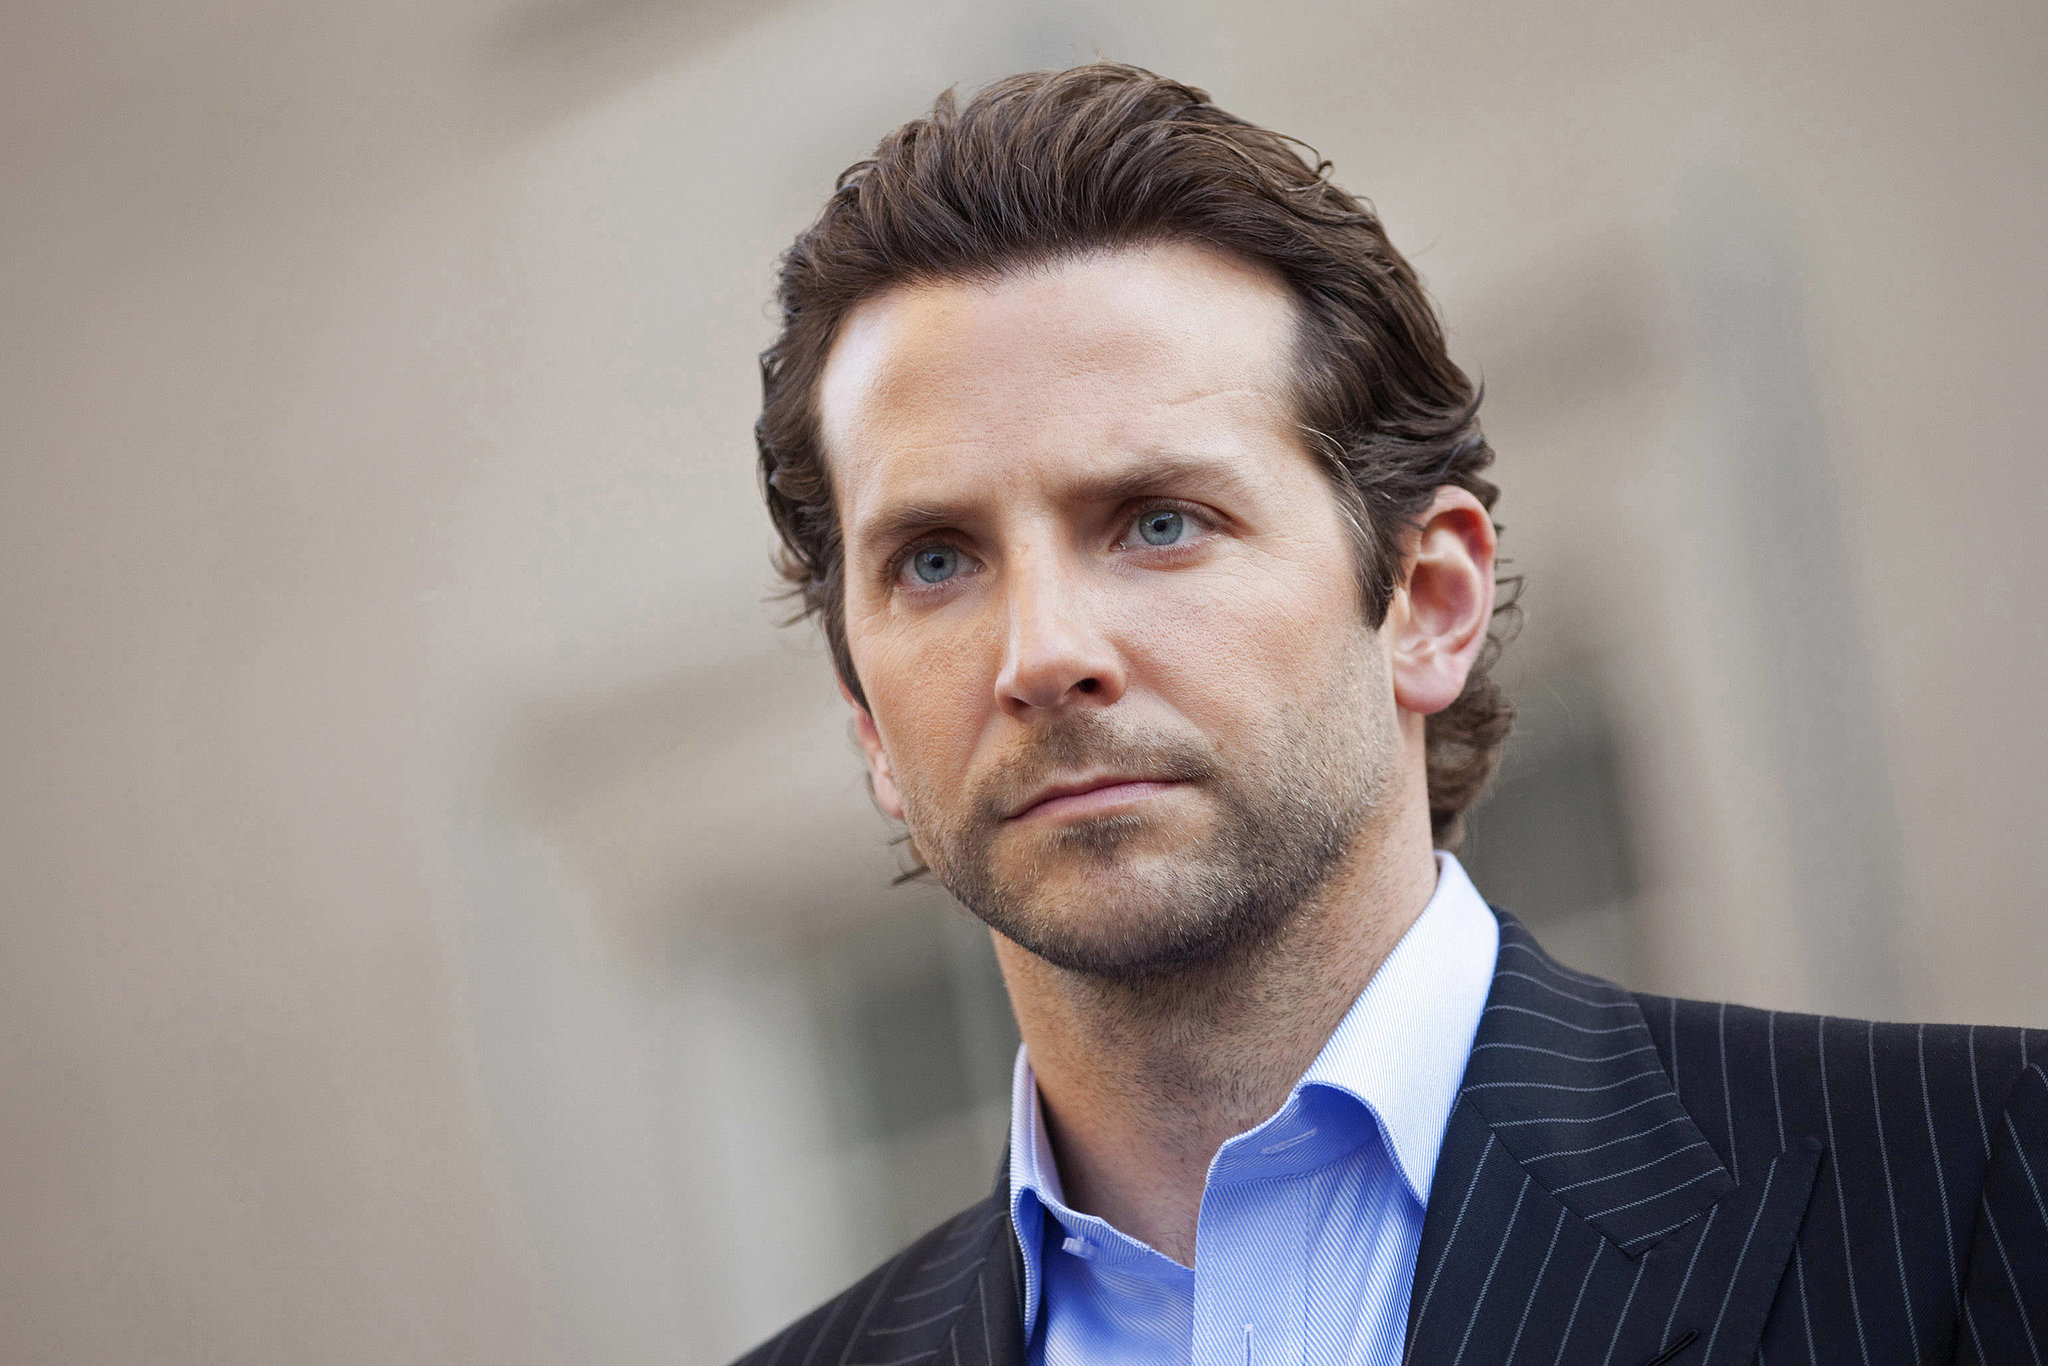 Bradley Cooper men hair trends 2018